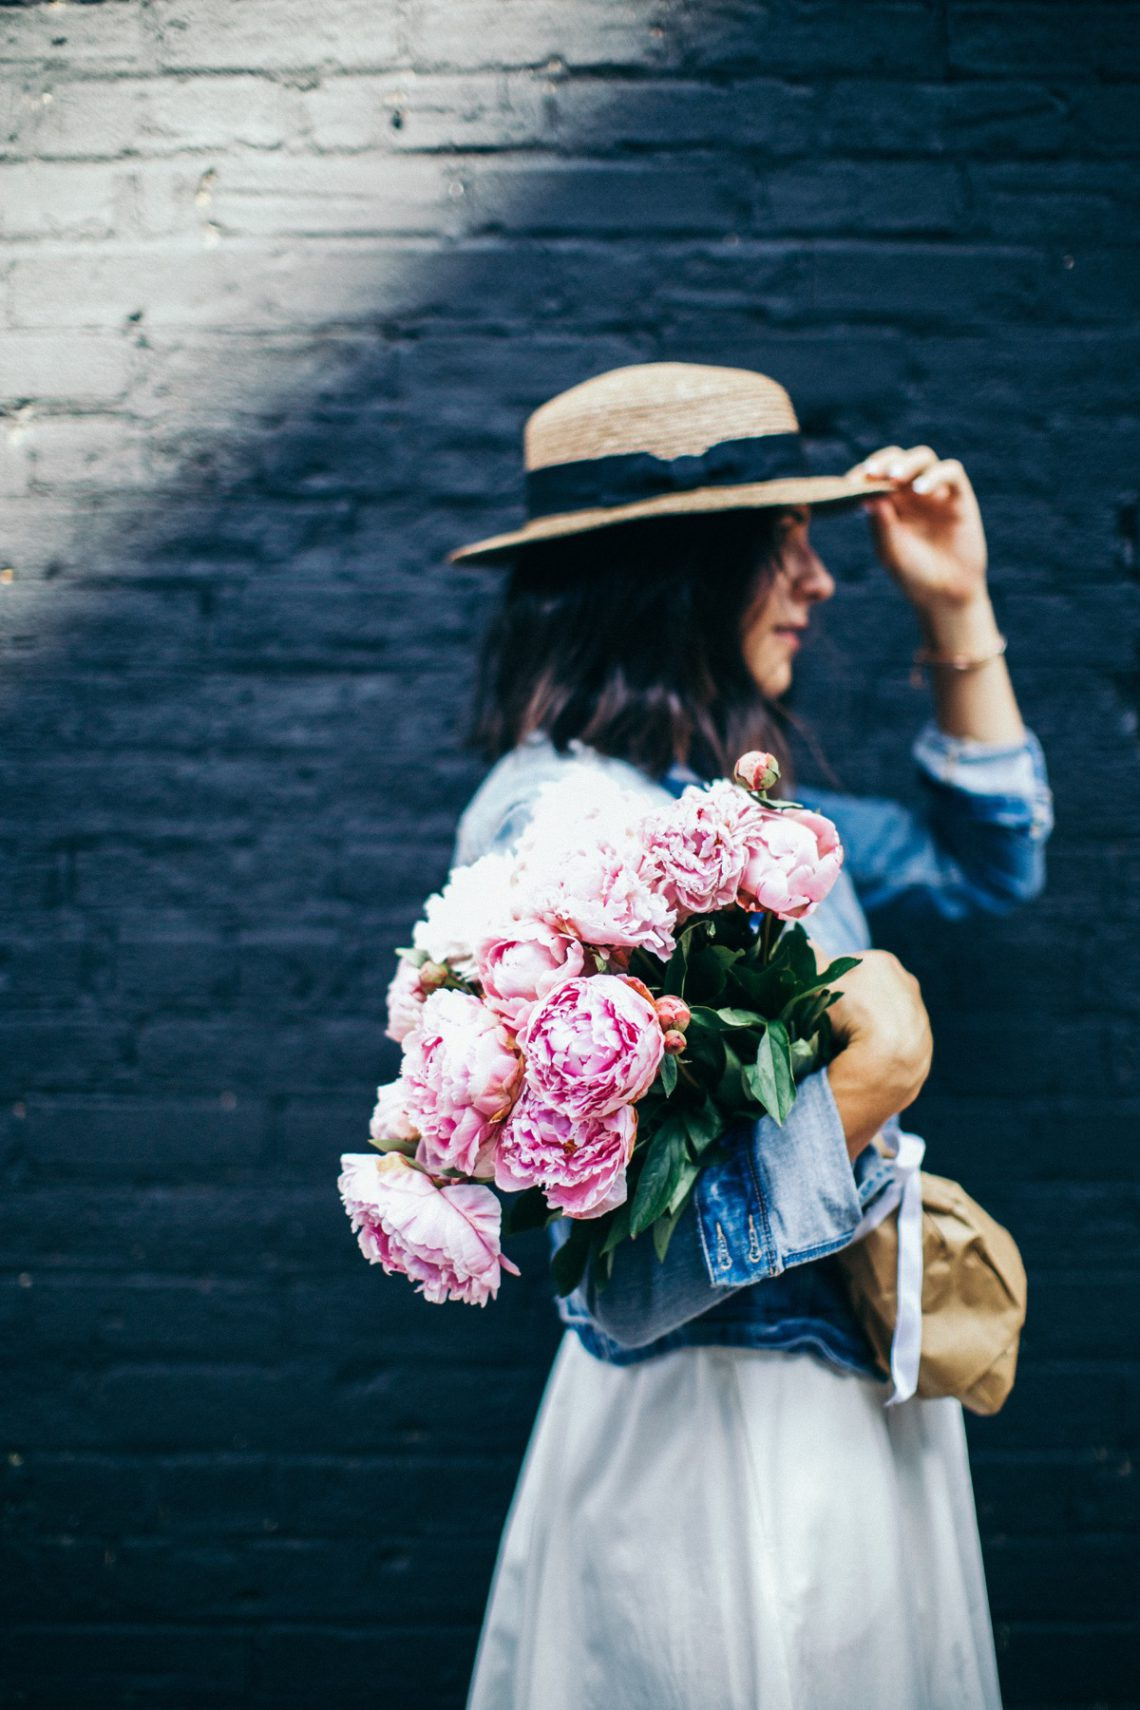 5 ways to style flowers when you dont have the right vase the 5 ways to style flowers when you dont have the right vase reviewsmspy